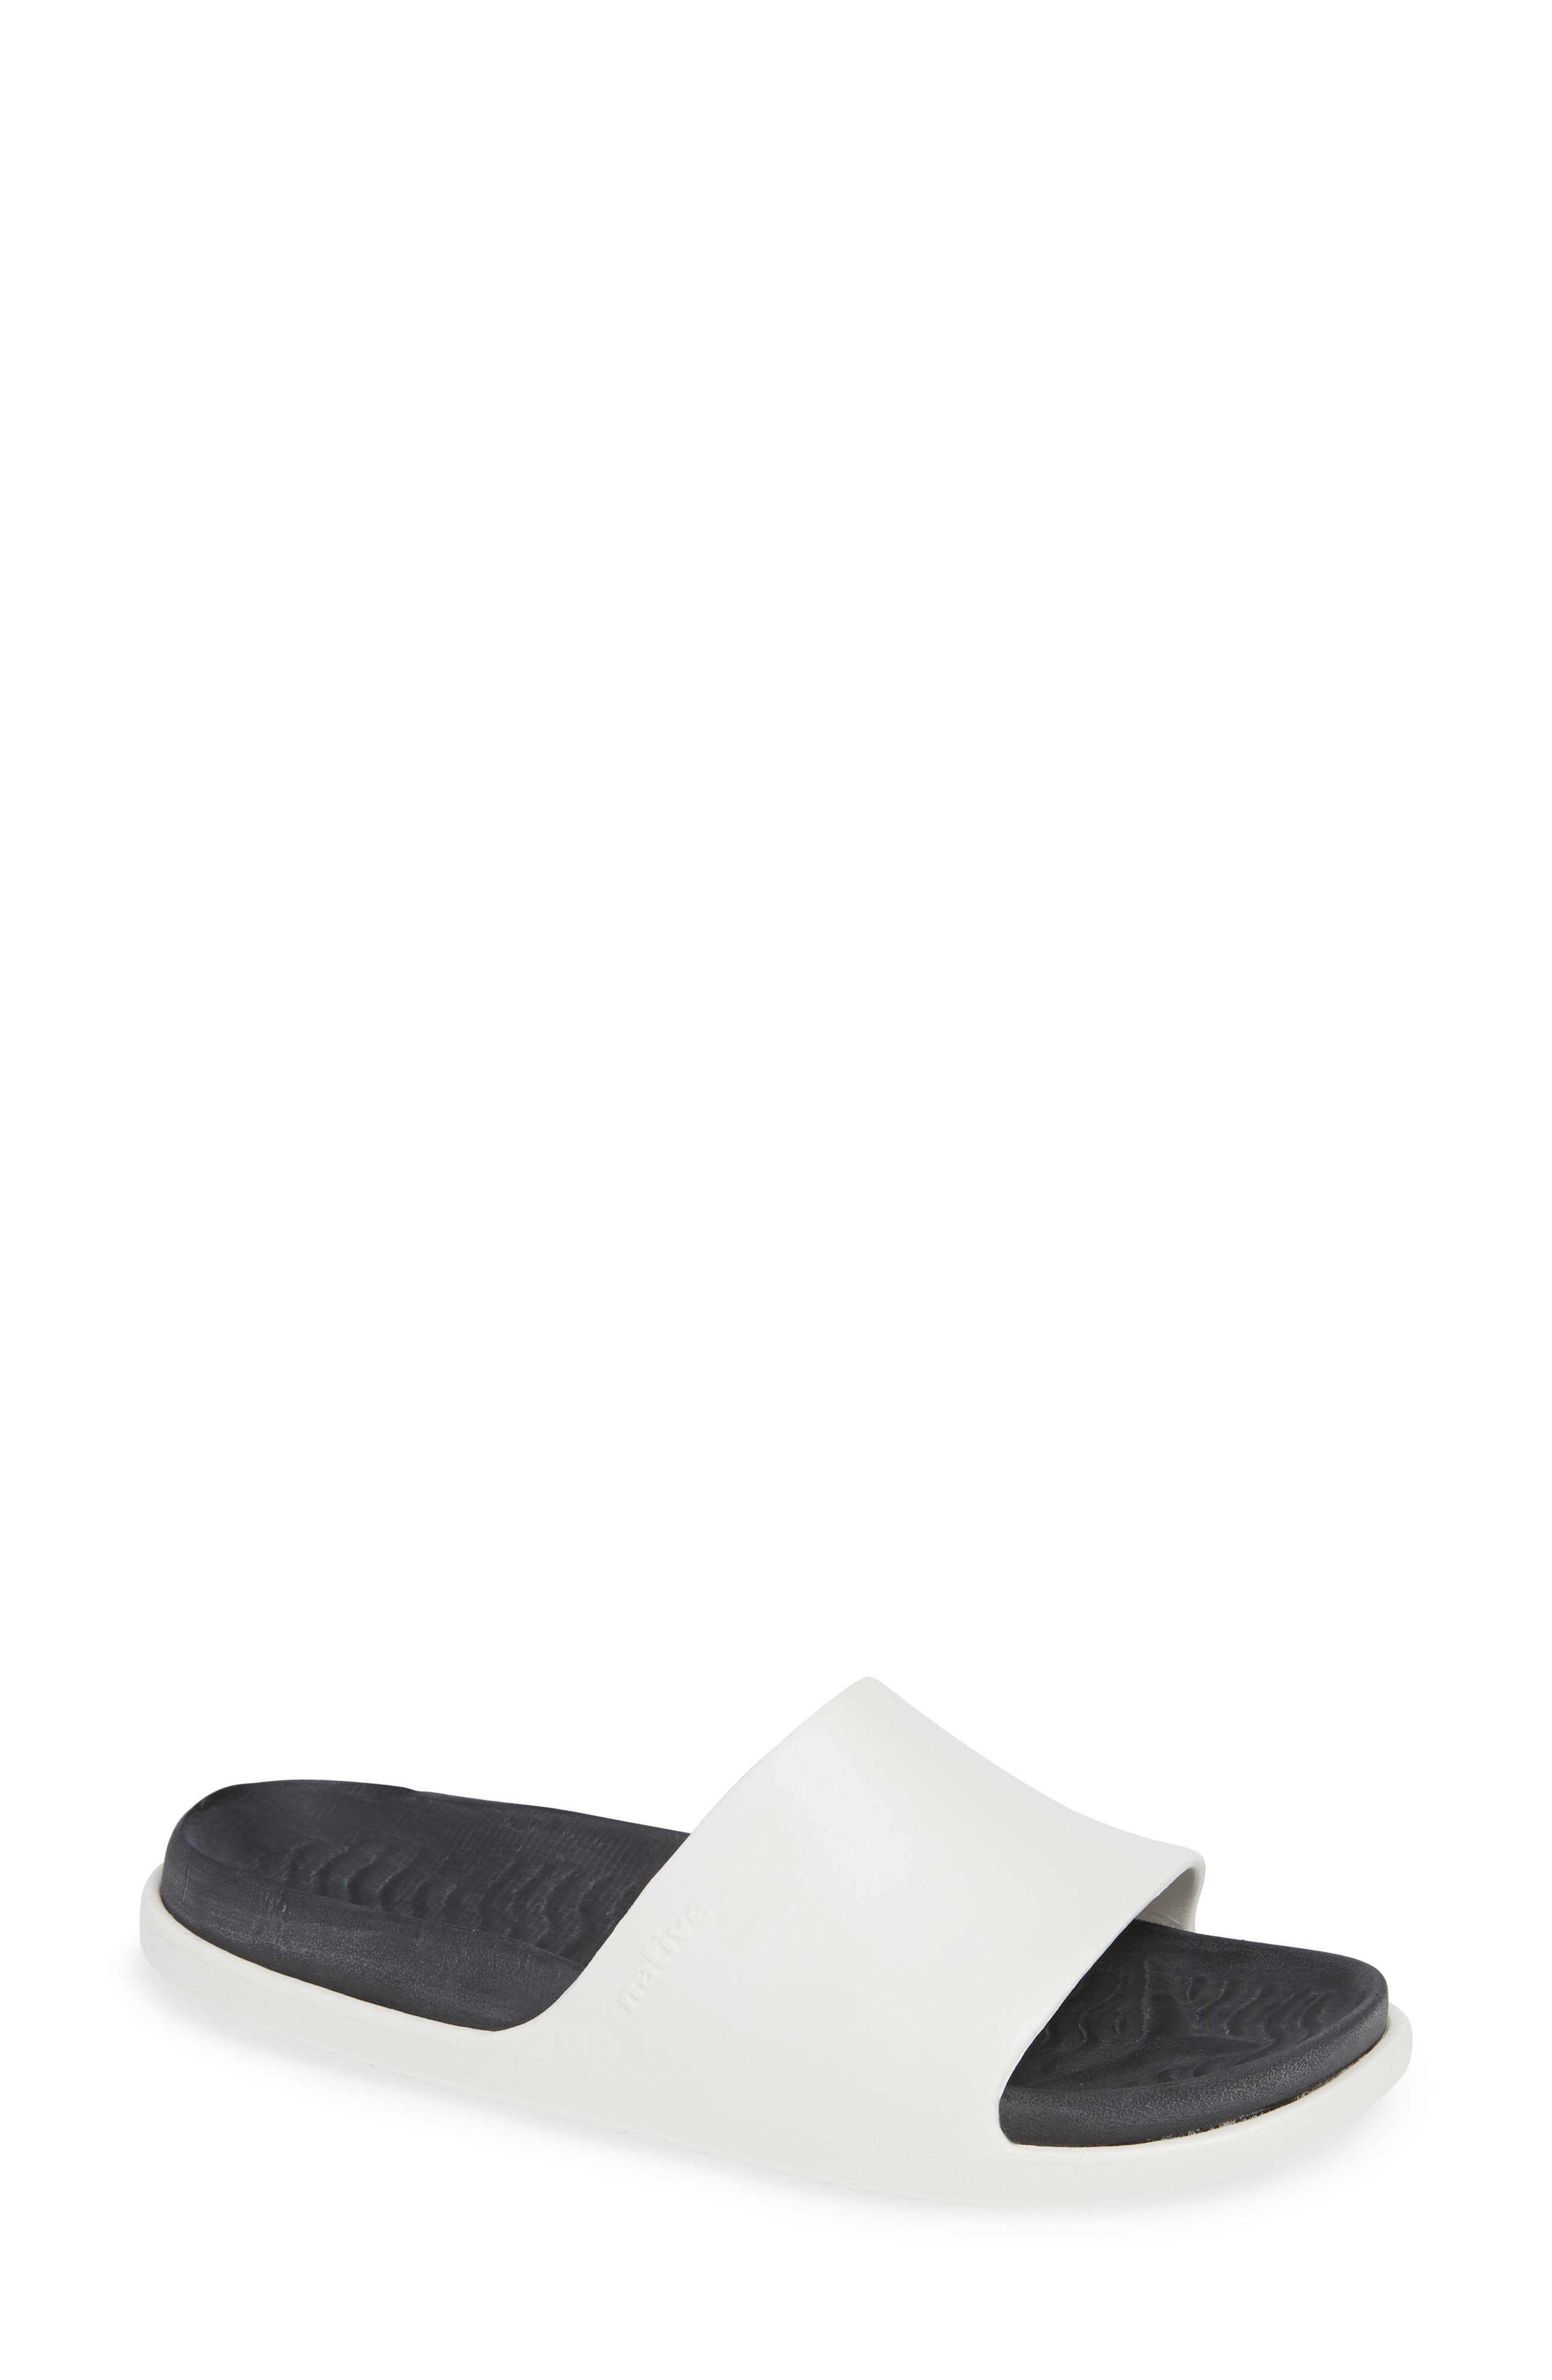 Native Shoes Spencer Lx Vegan Sport Slide Sandal, White